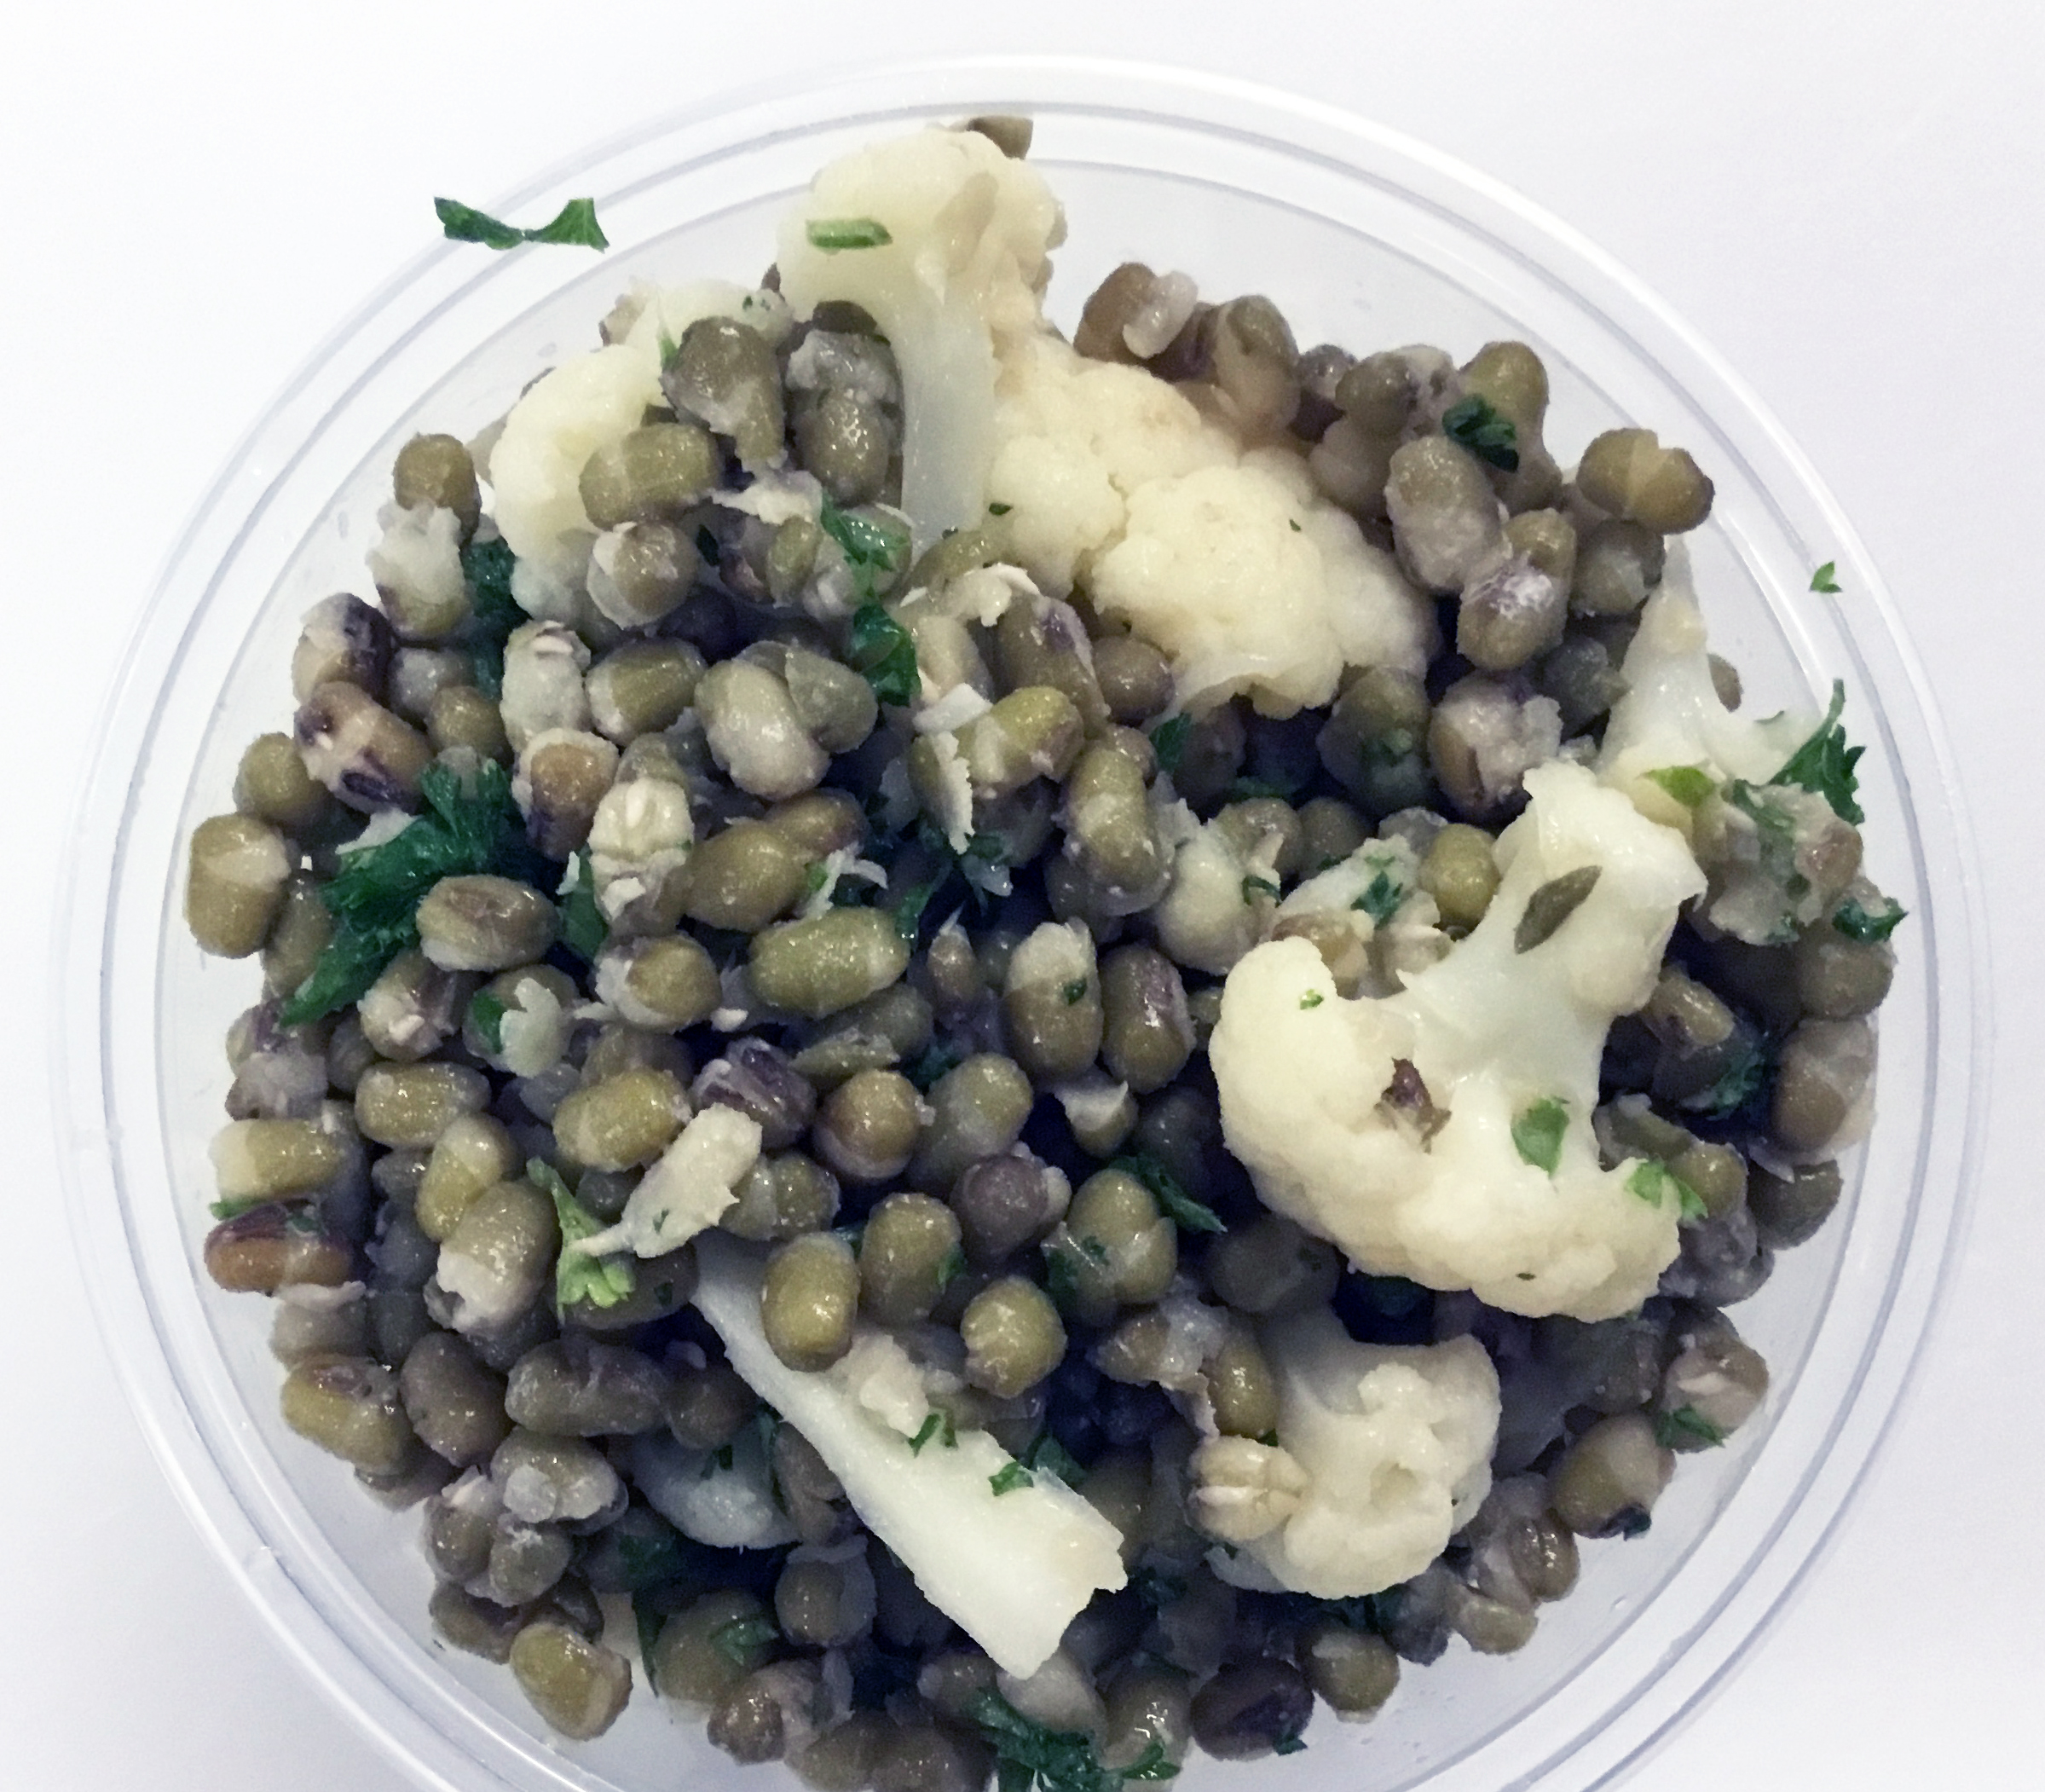 Mung beans with cauliflower and parsley.